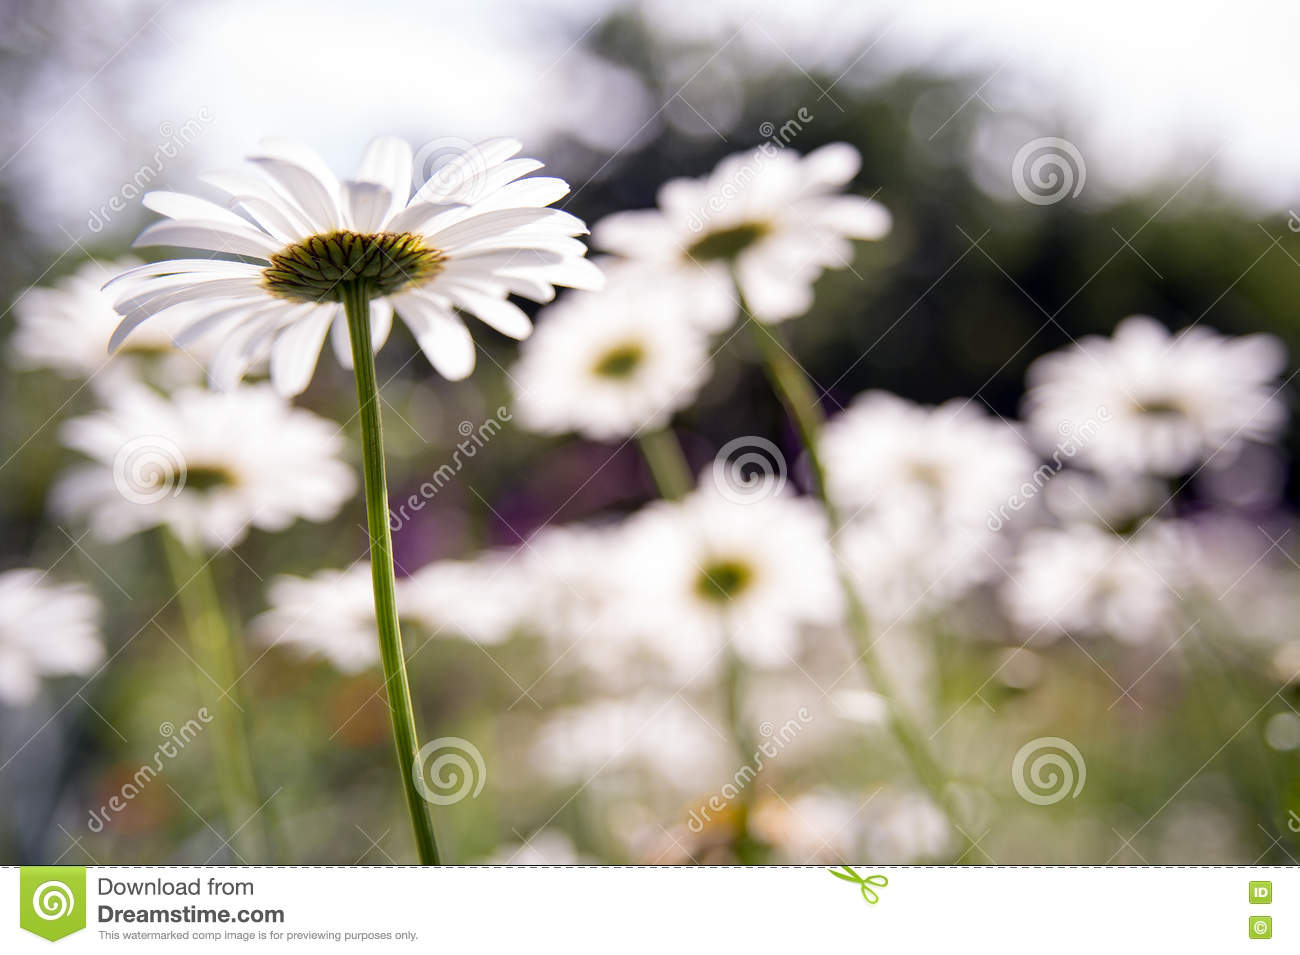 Daisy Flower Stock Photo Image Of Vivid Colorful Nature 73174492